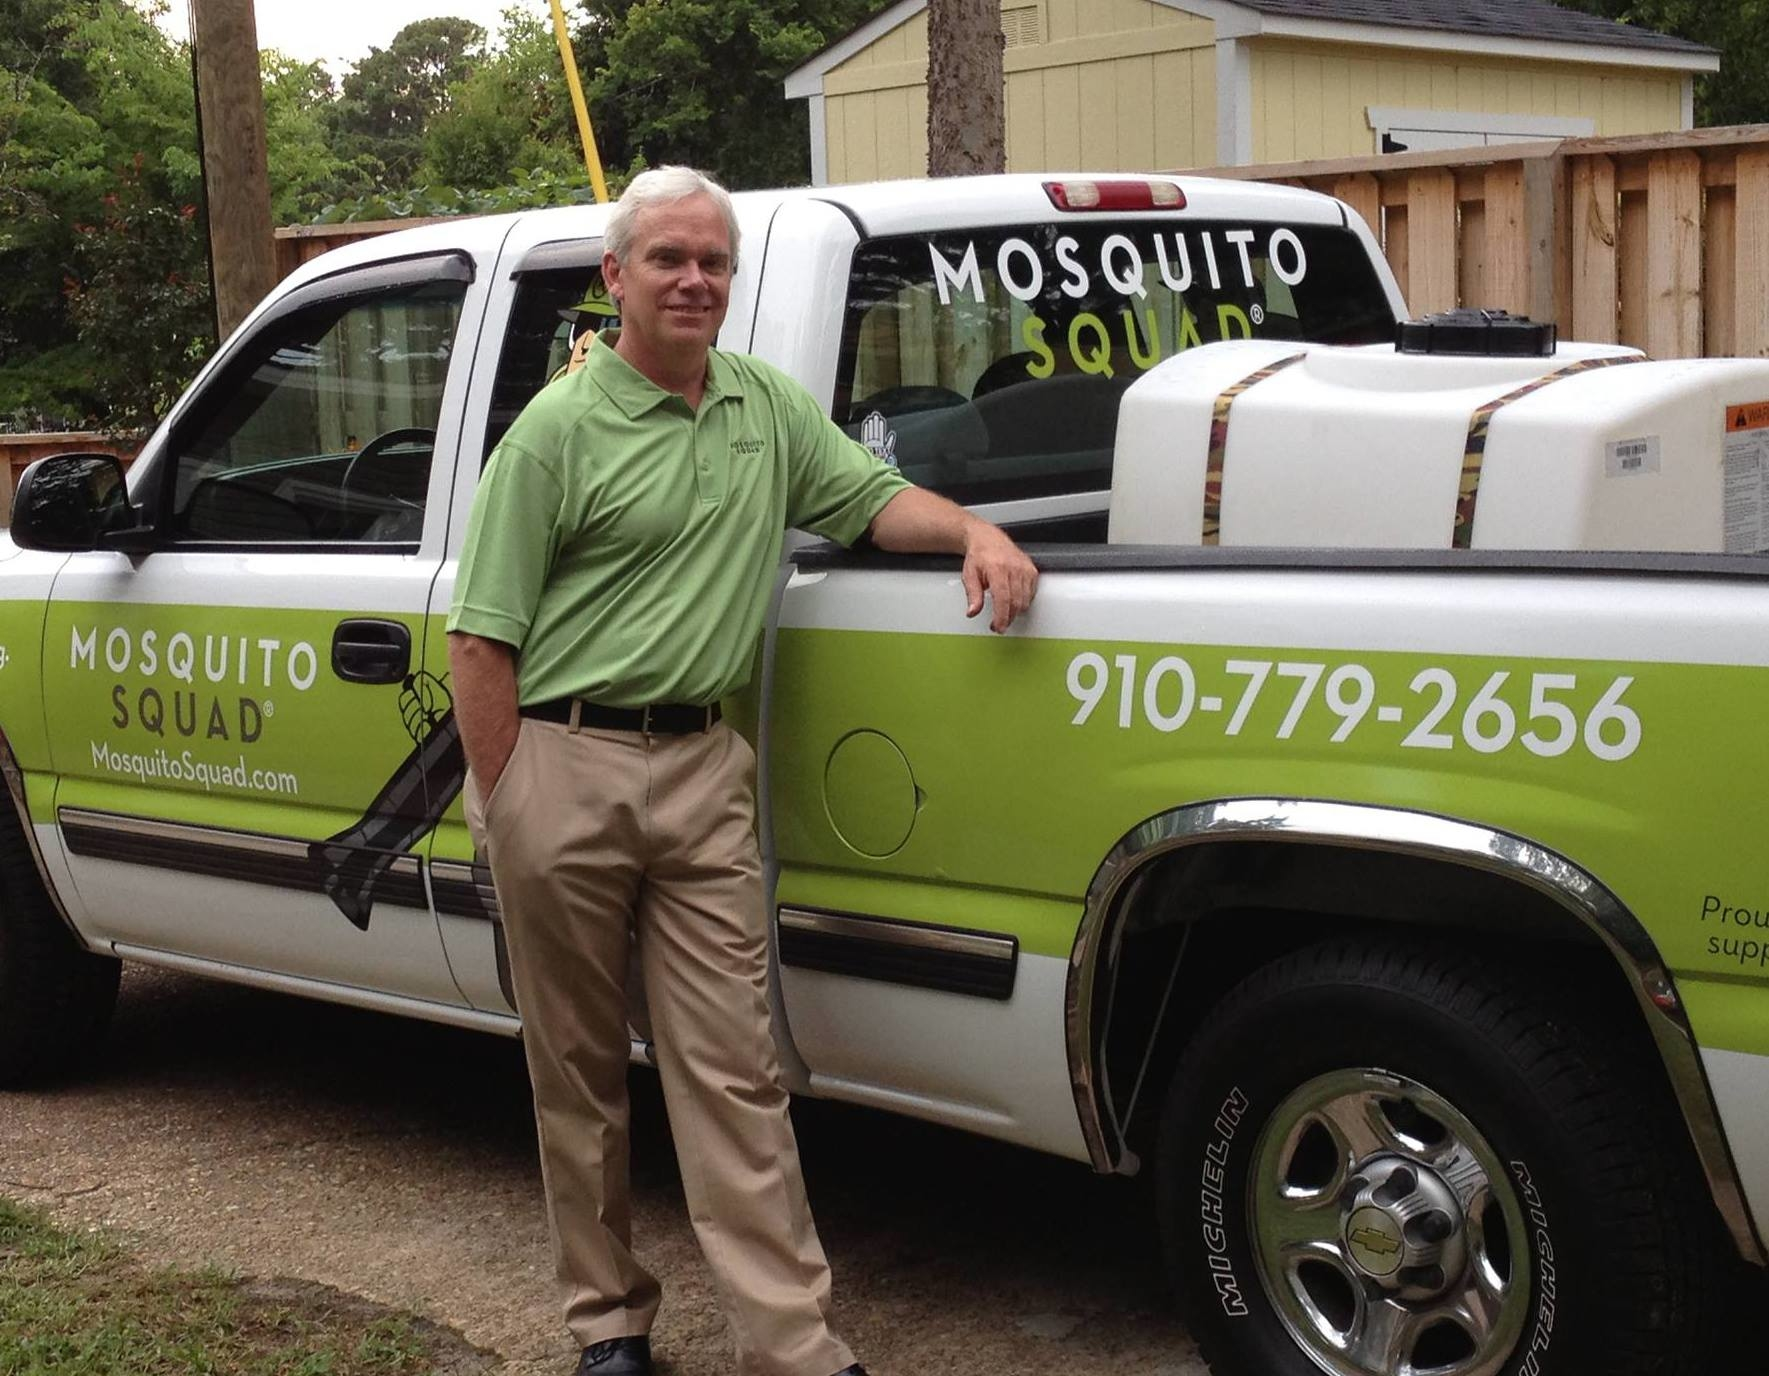 Mosquito Squad of Fayetteville image 3